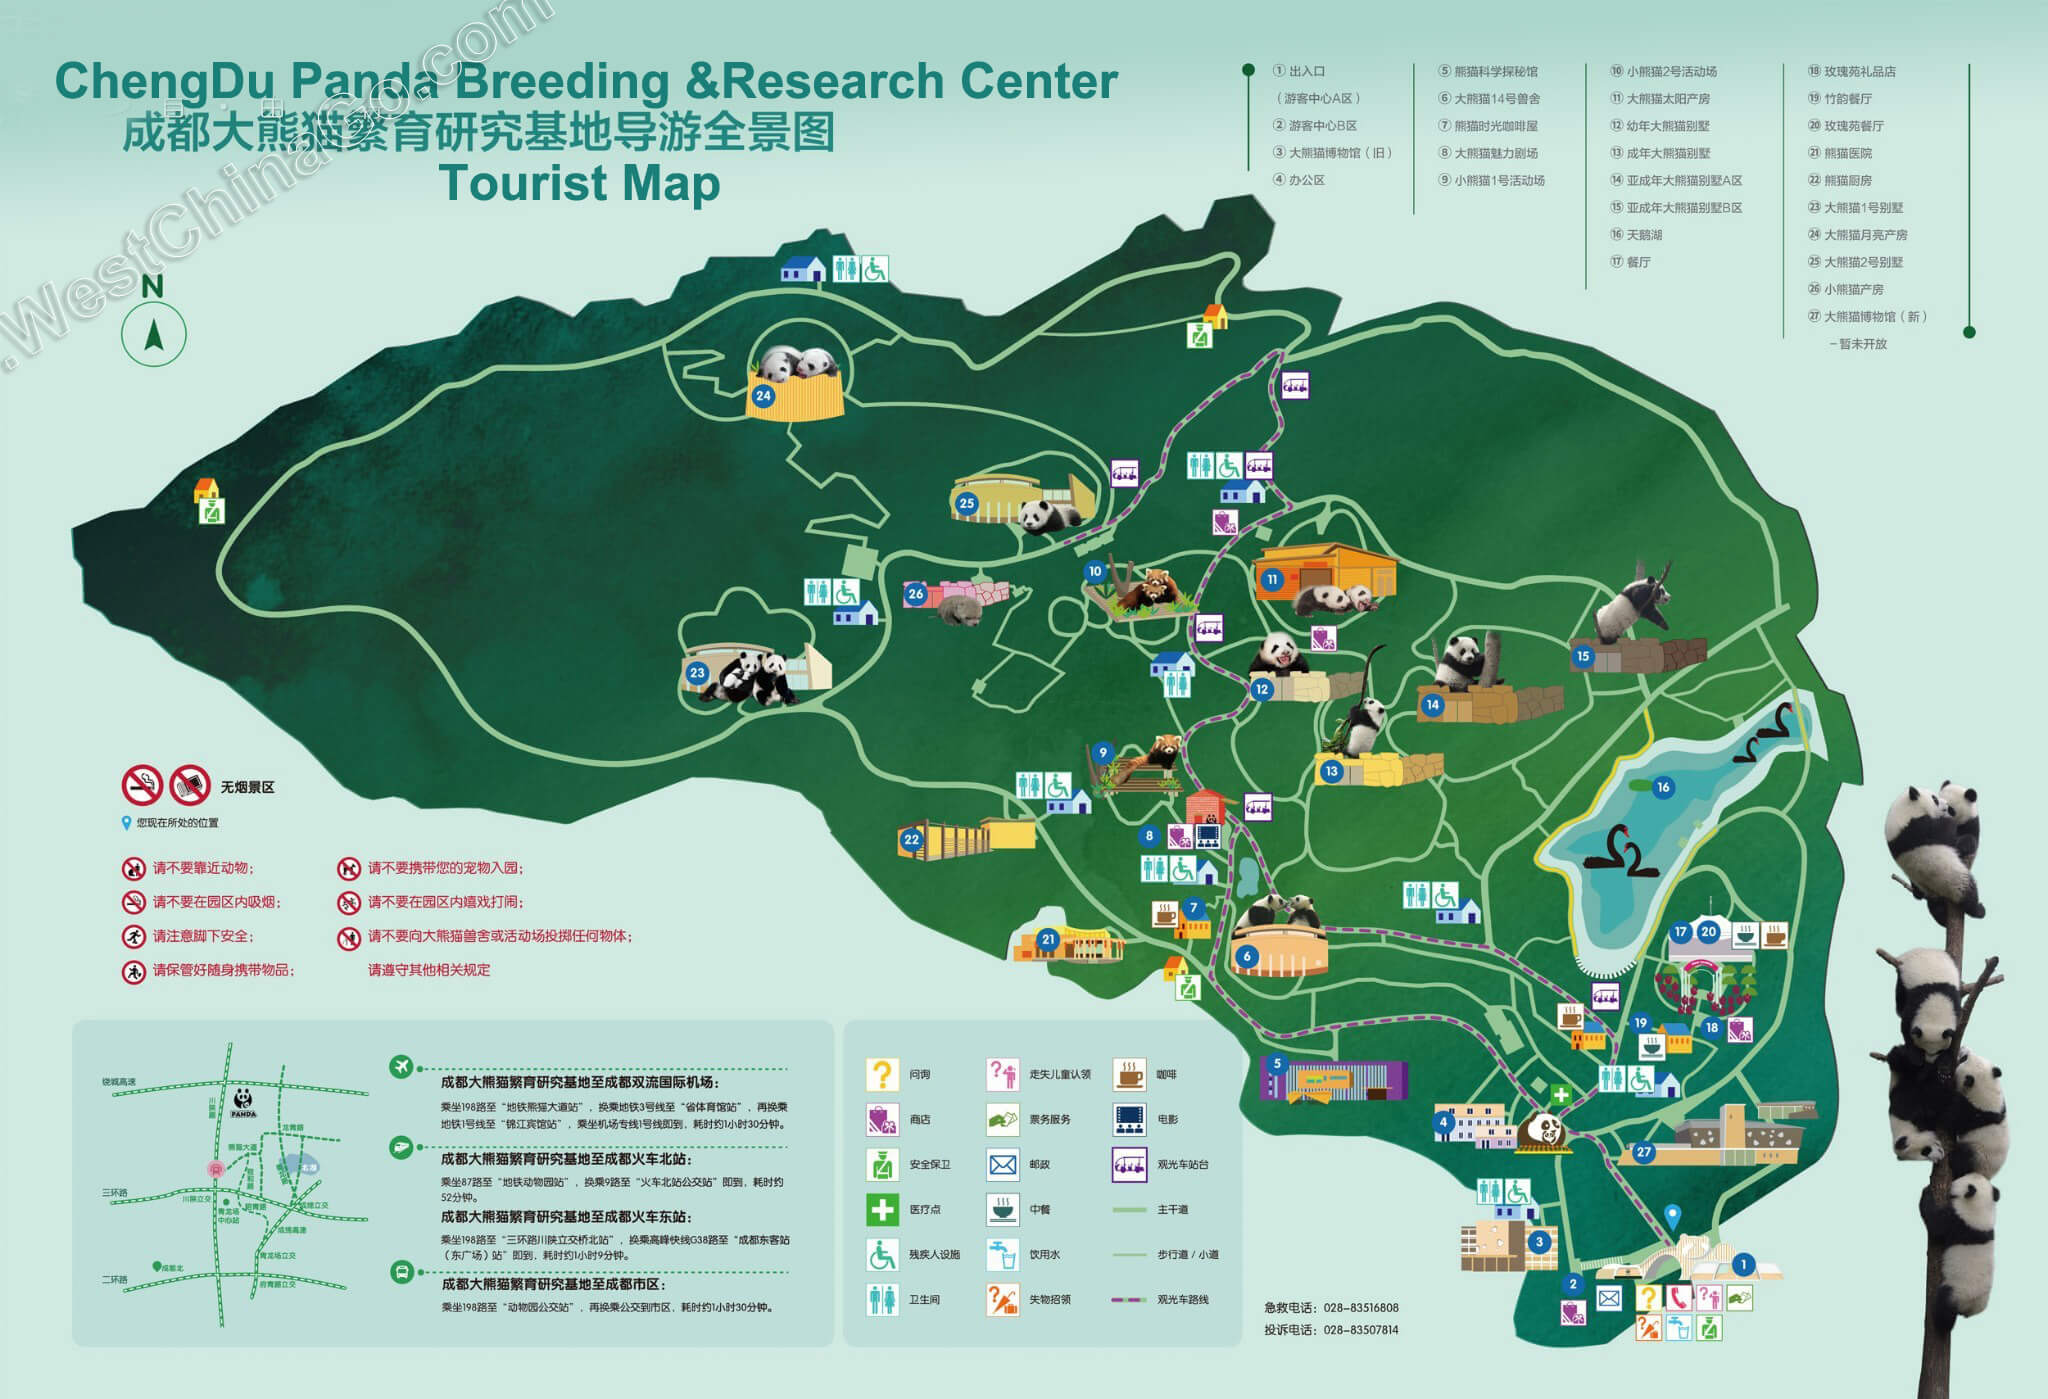 ChengDu Panda Breeding and Research Center tourist map